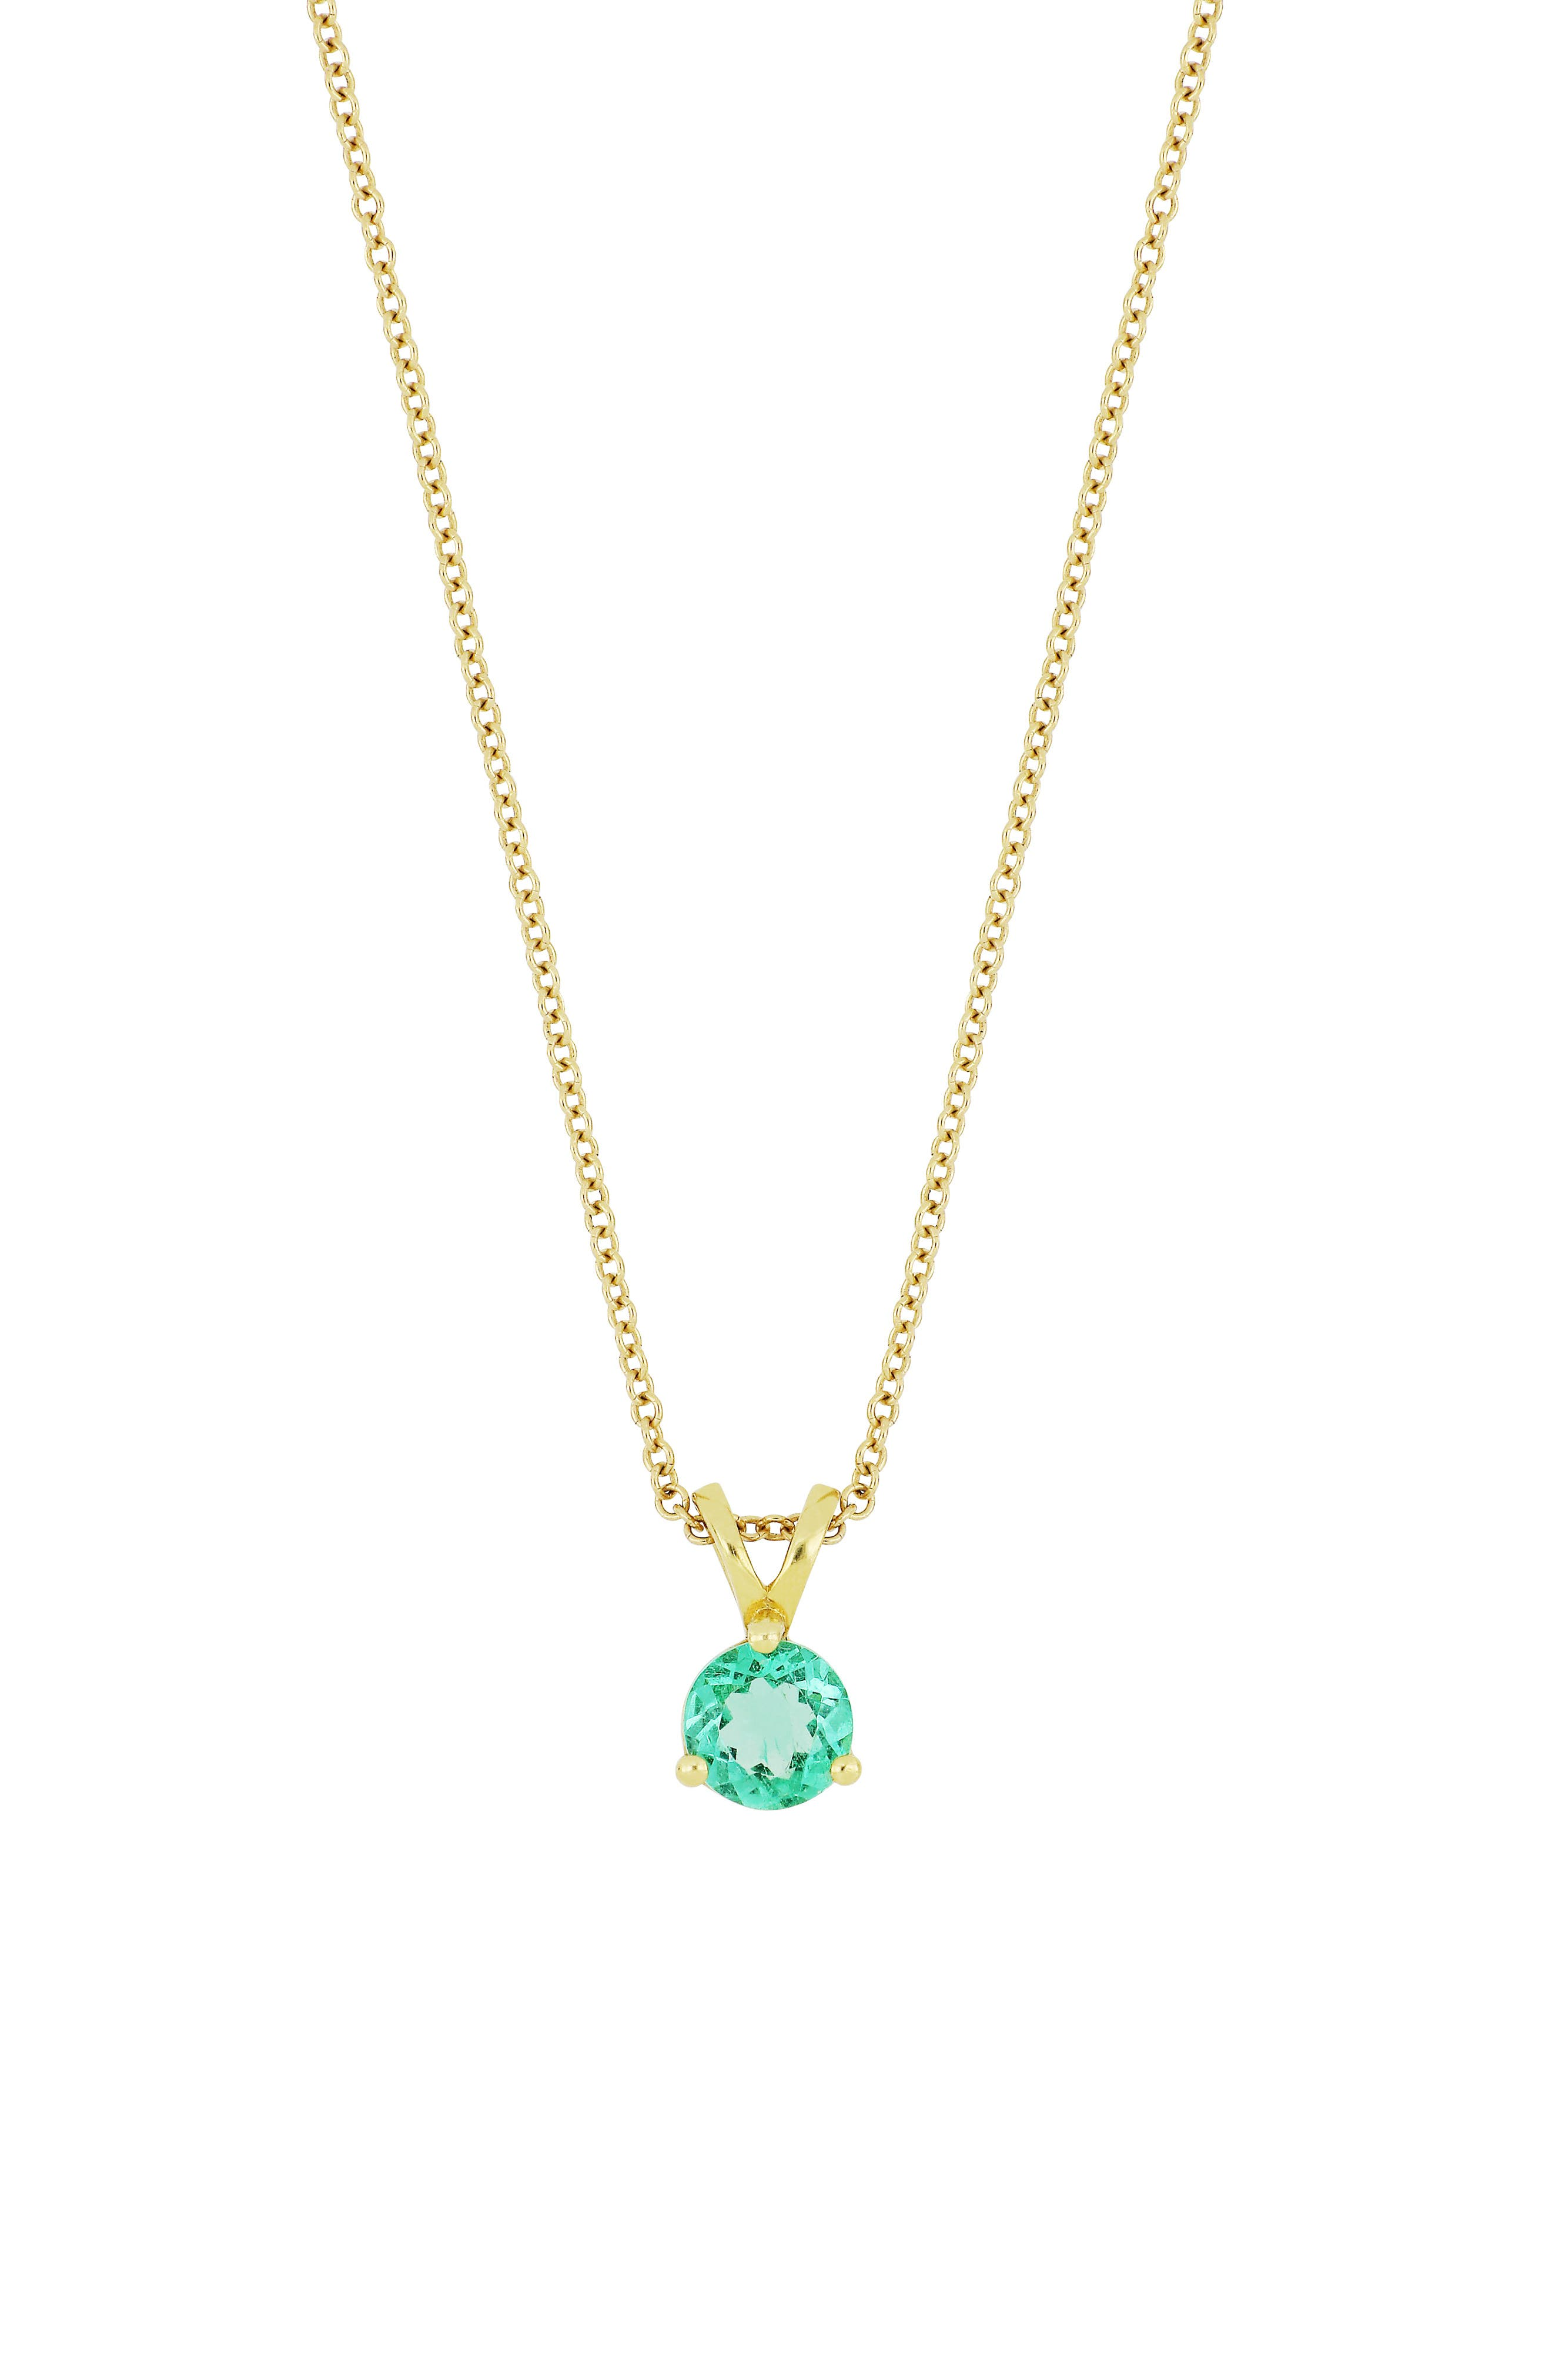 Emerald Pendant Necklace,                             Main thumbnail 1, color,                             GOLD/ EMERALD